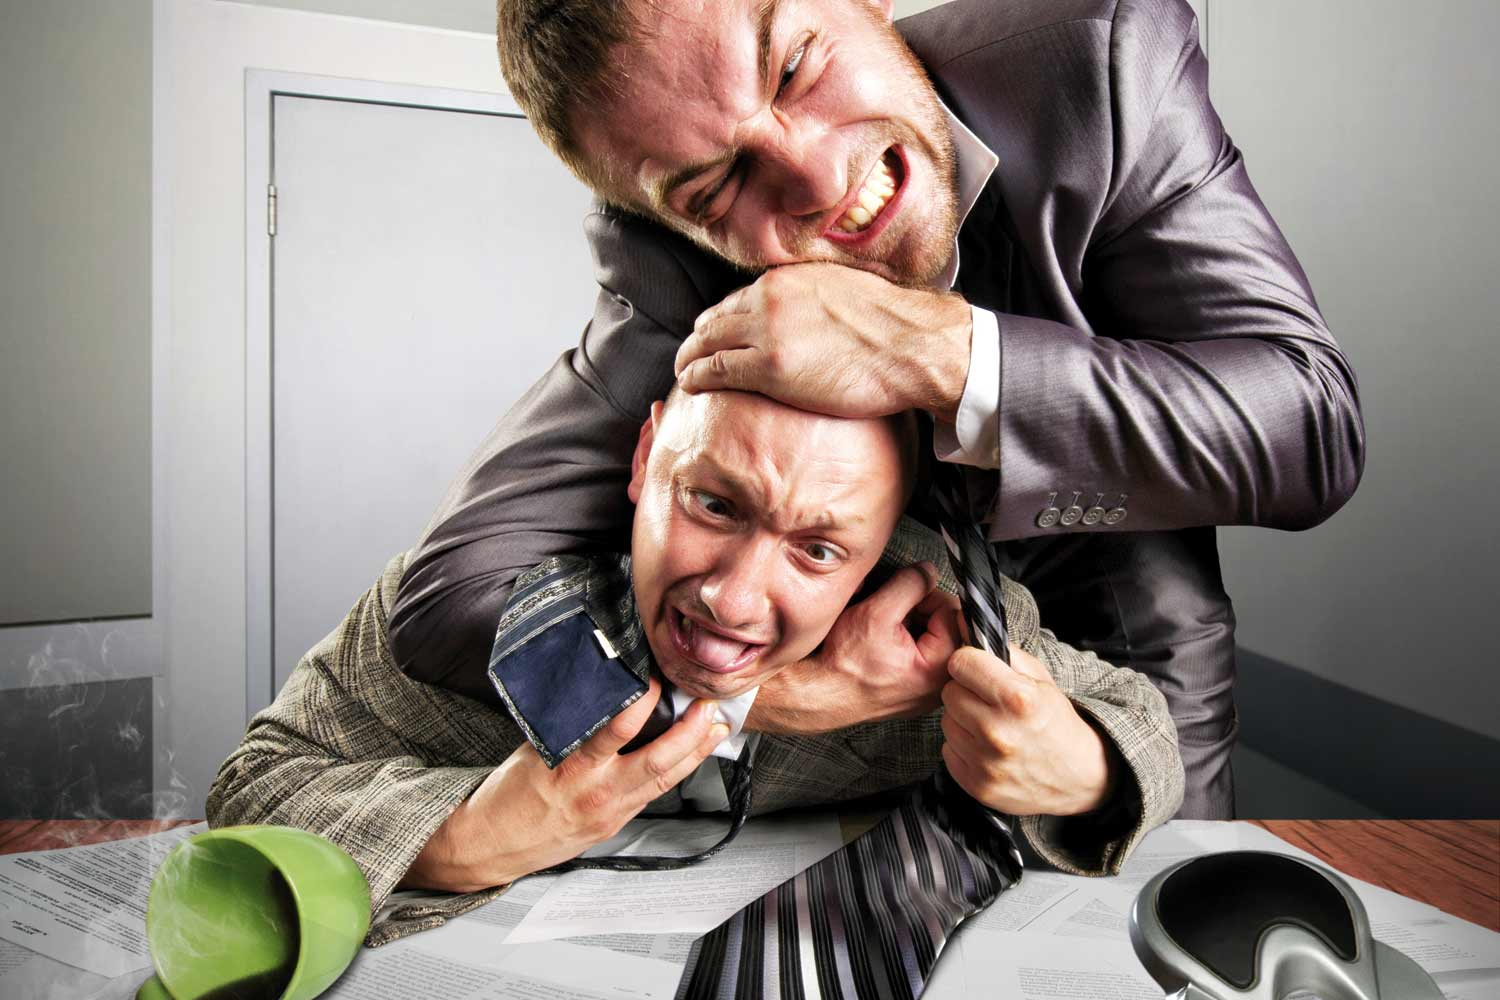 types of coworkers you wish you could strangle complete wellbeing man strangling his colleague in office